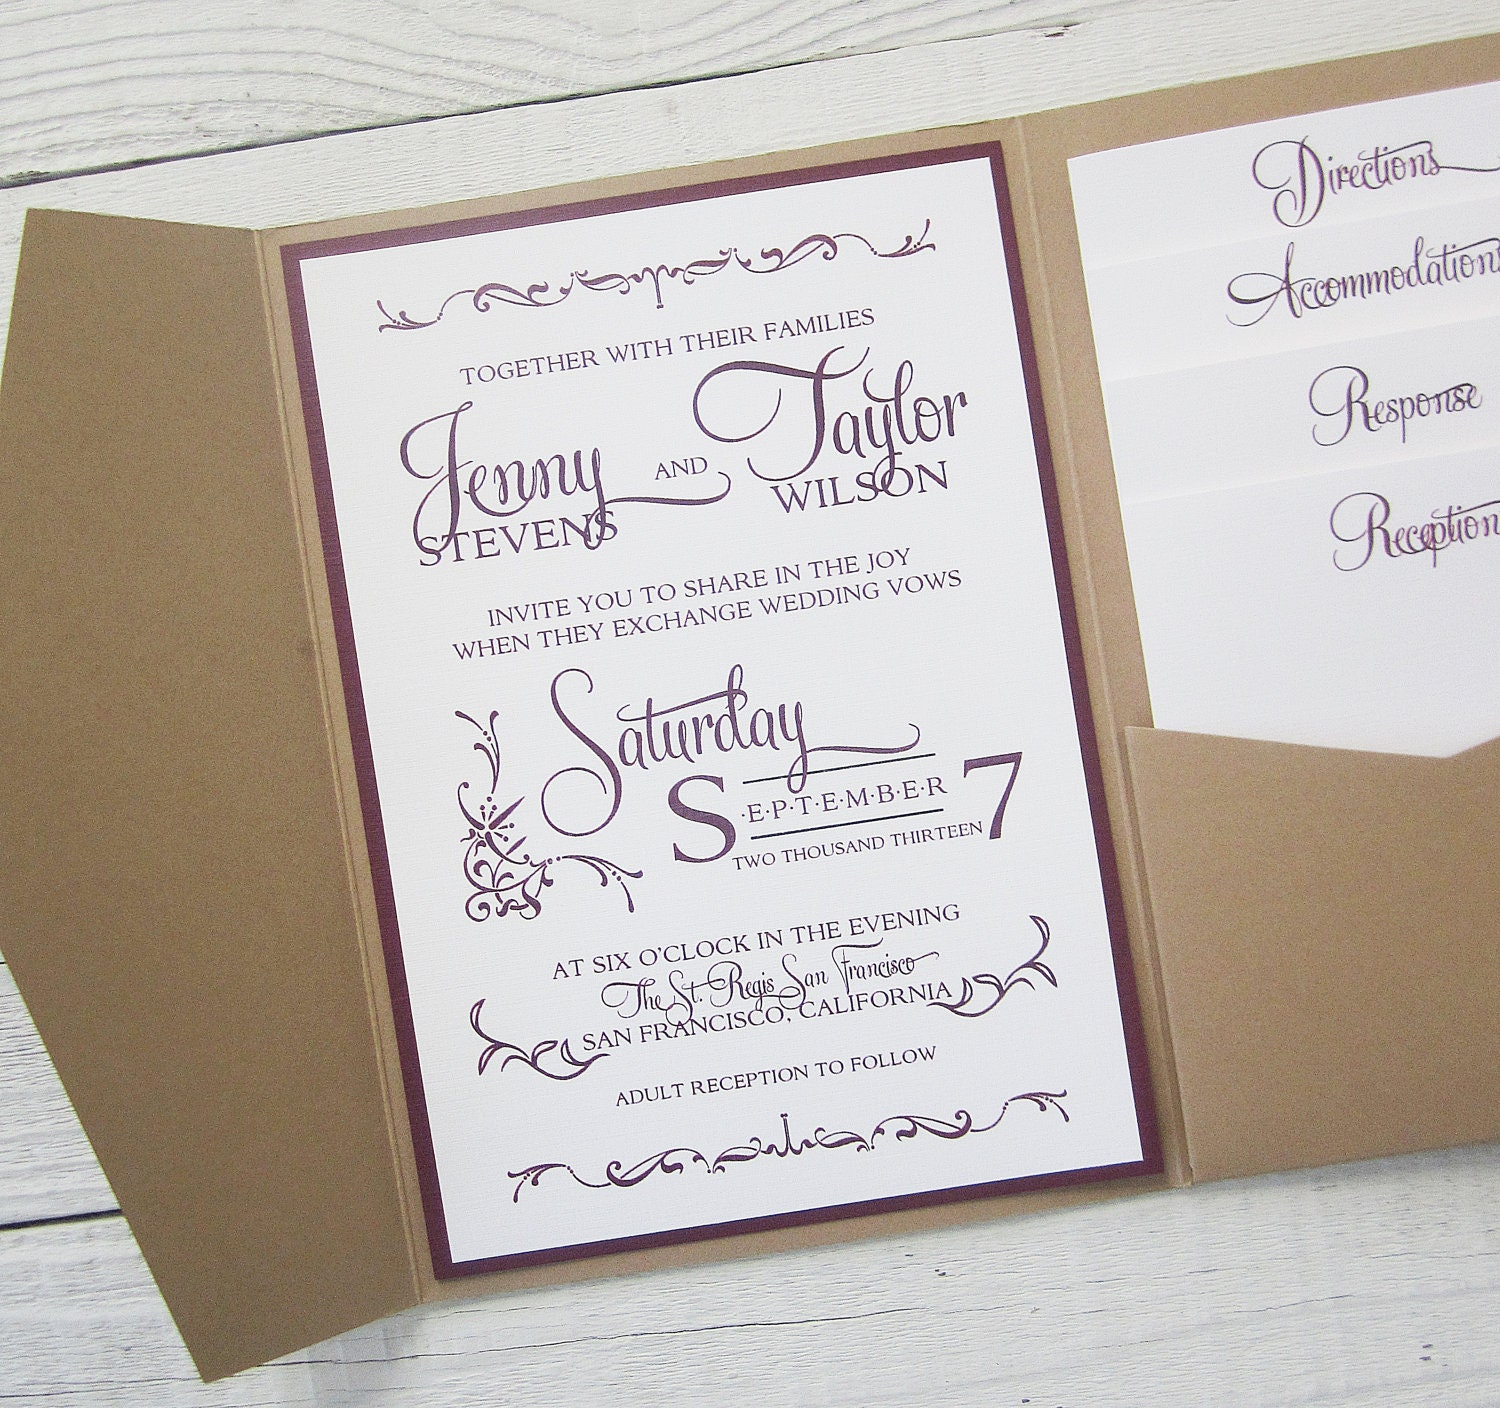 Pocket Wedding Invitation and get inspiration to create nice invitation ideas